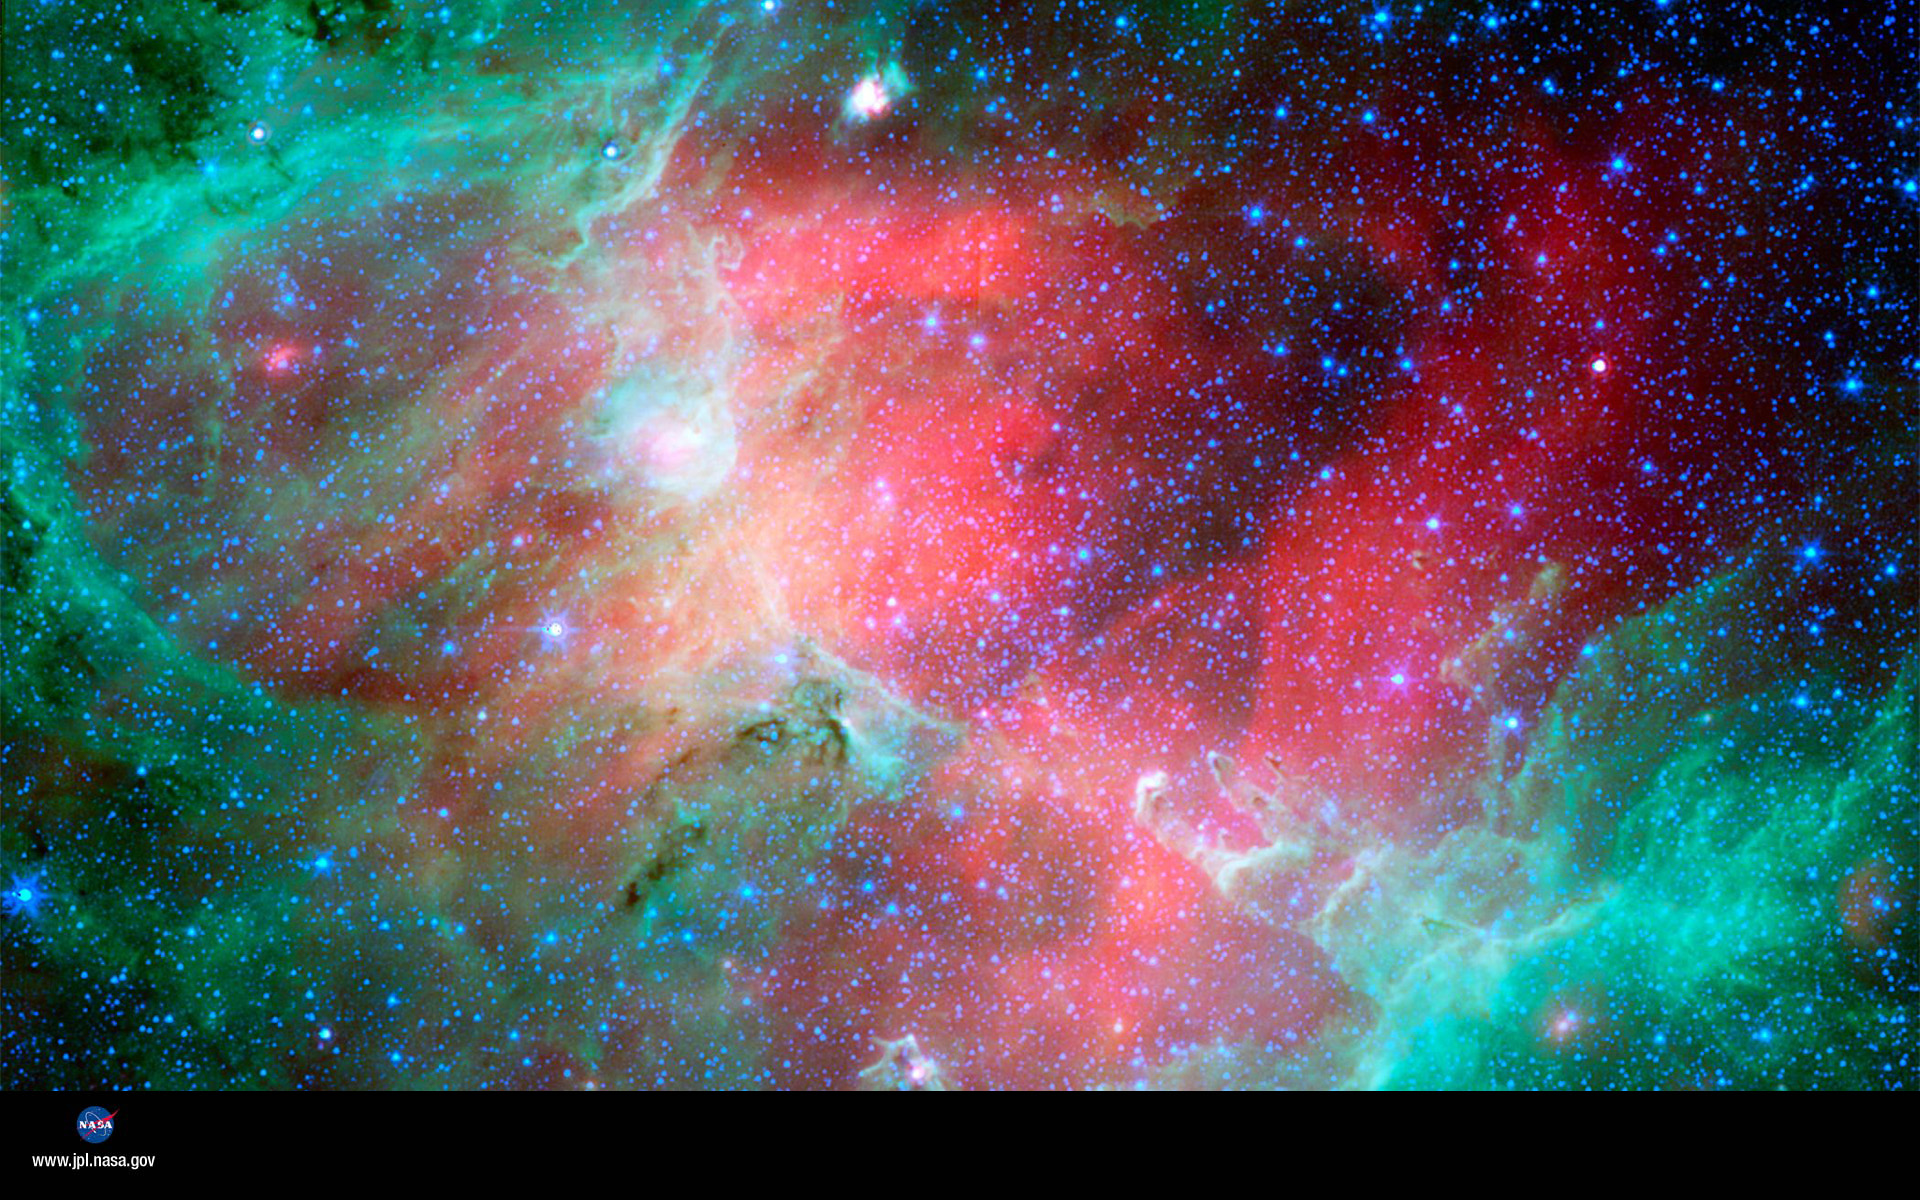 Eagle Nebula Wallpaper Hd The Eagle Nebula Wallpaper - Full HD Wallpapers